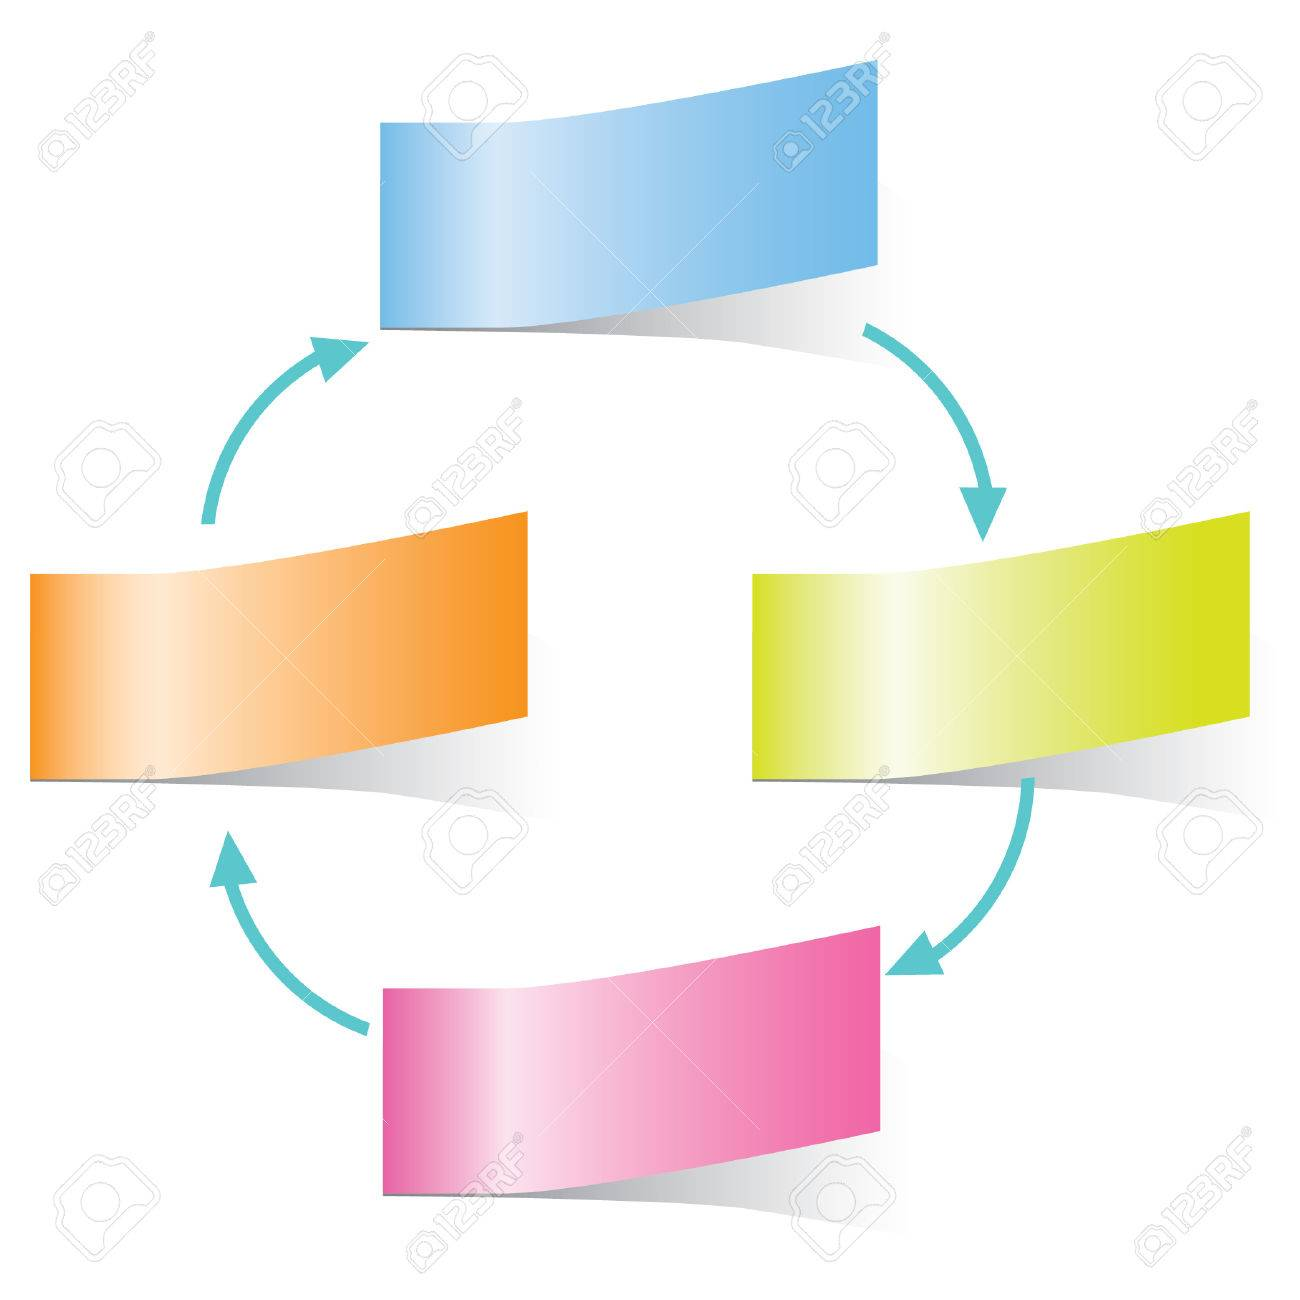 Sticky Note Diagram, Template Stock Vector   26229200